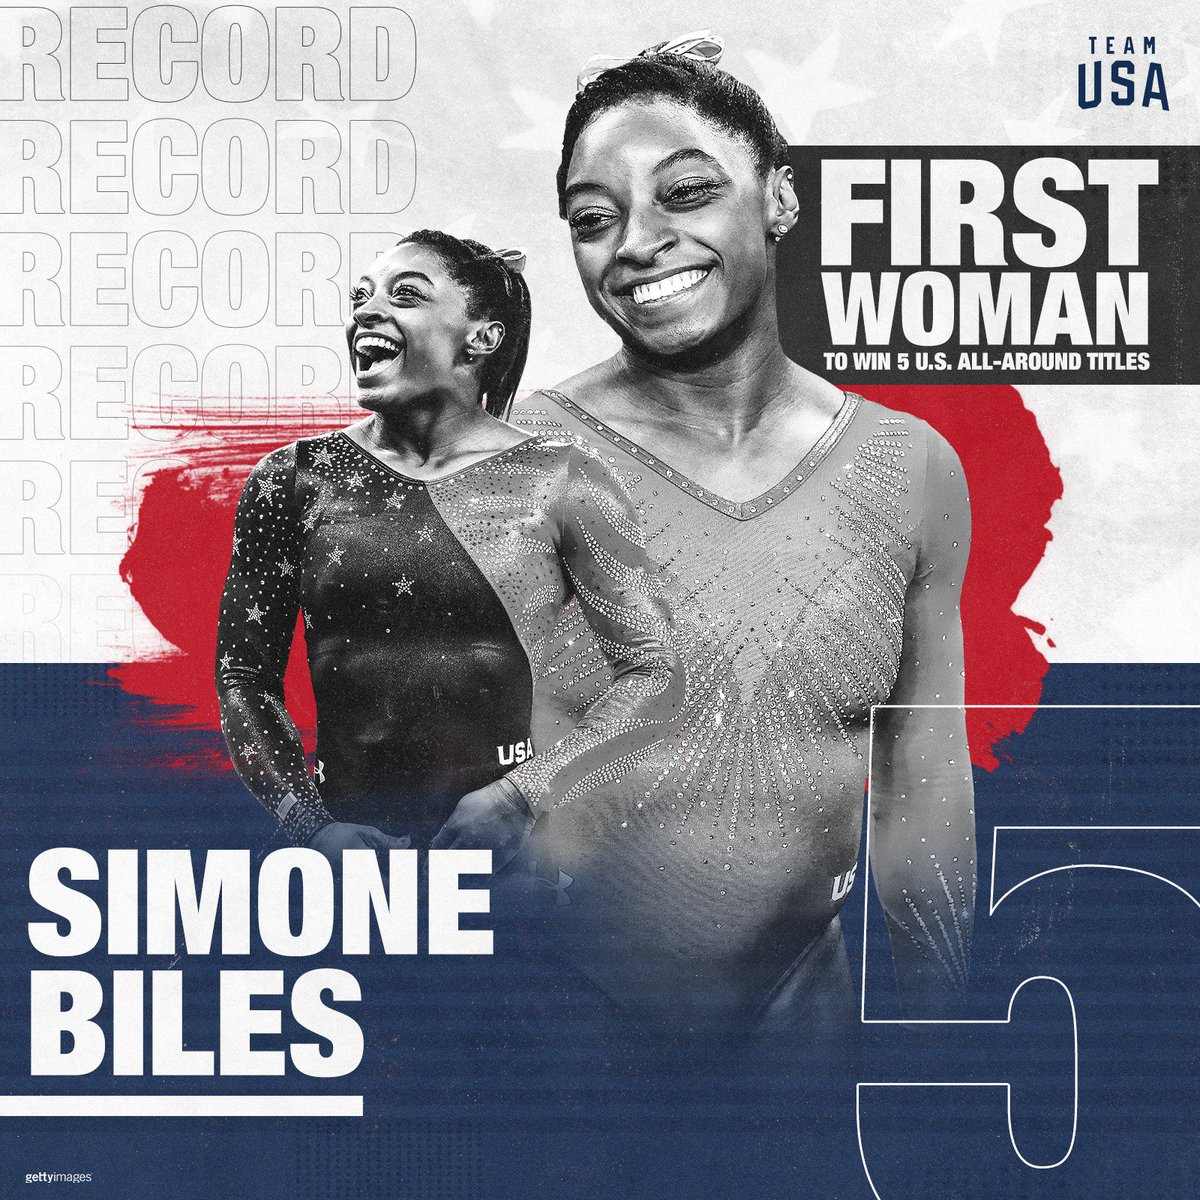 BREAKING: @Simone_Biles is the FIRST woman to win FIVE U.S. all-around titles. 🏆#USGymChamps #SCS2018